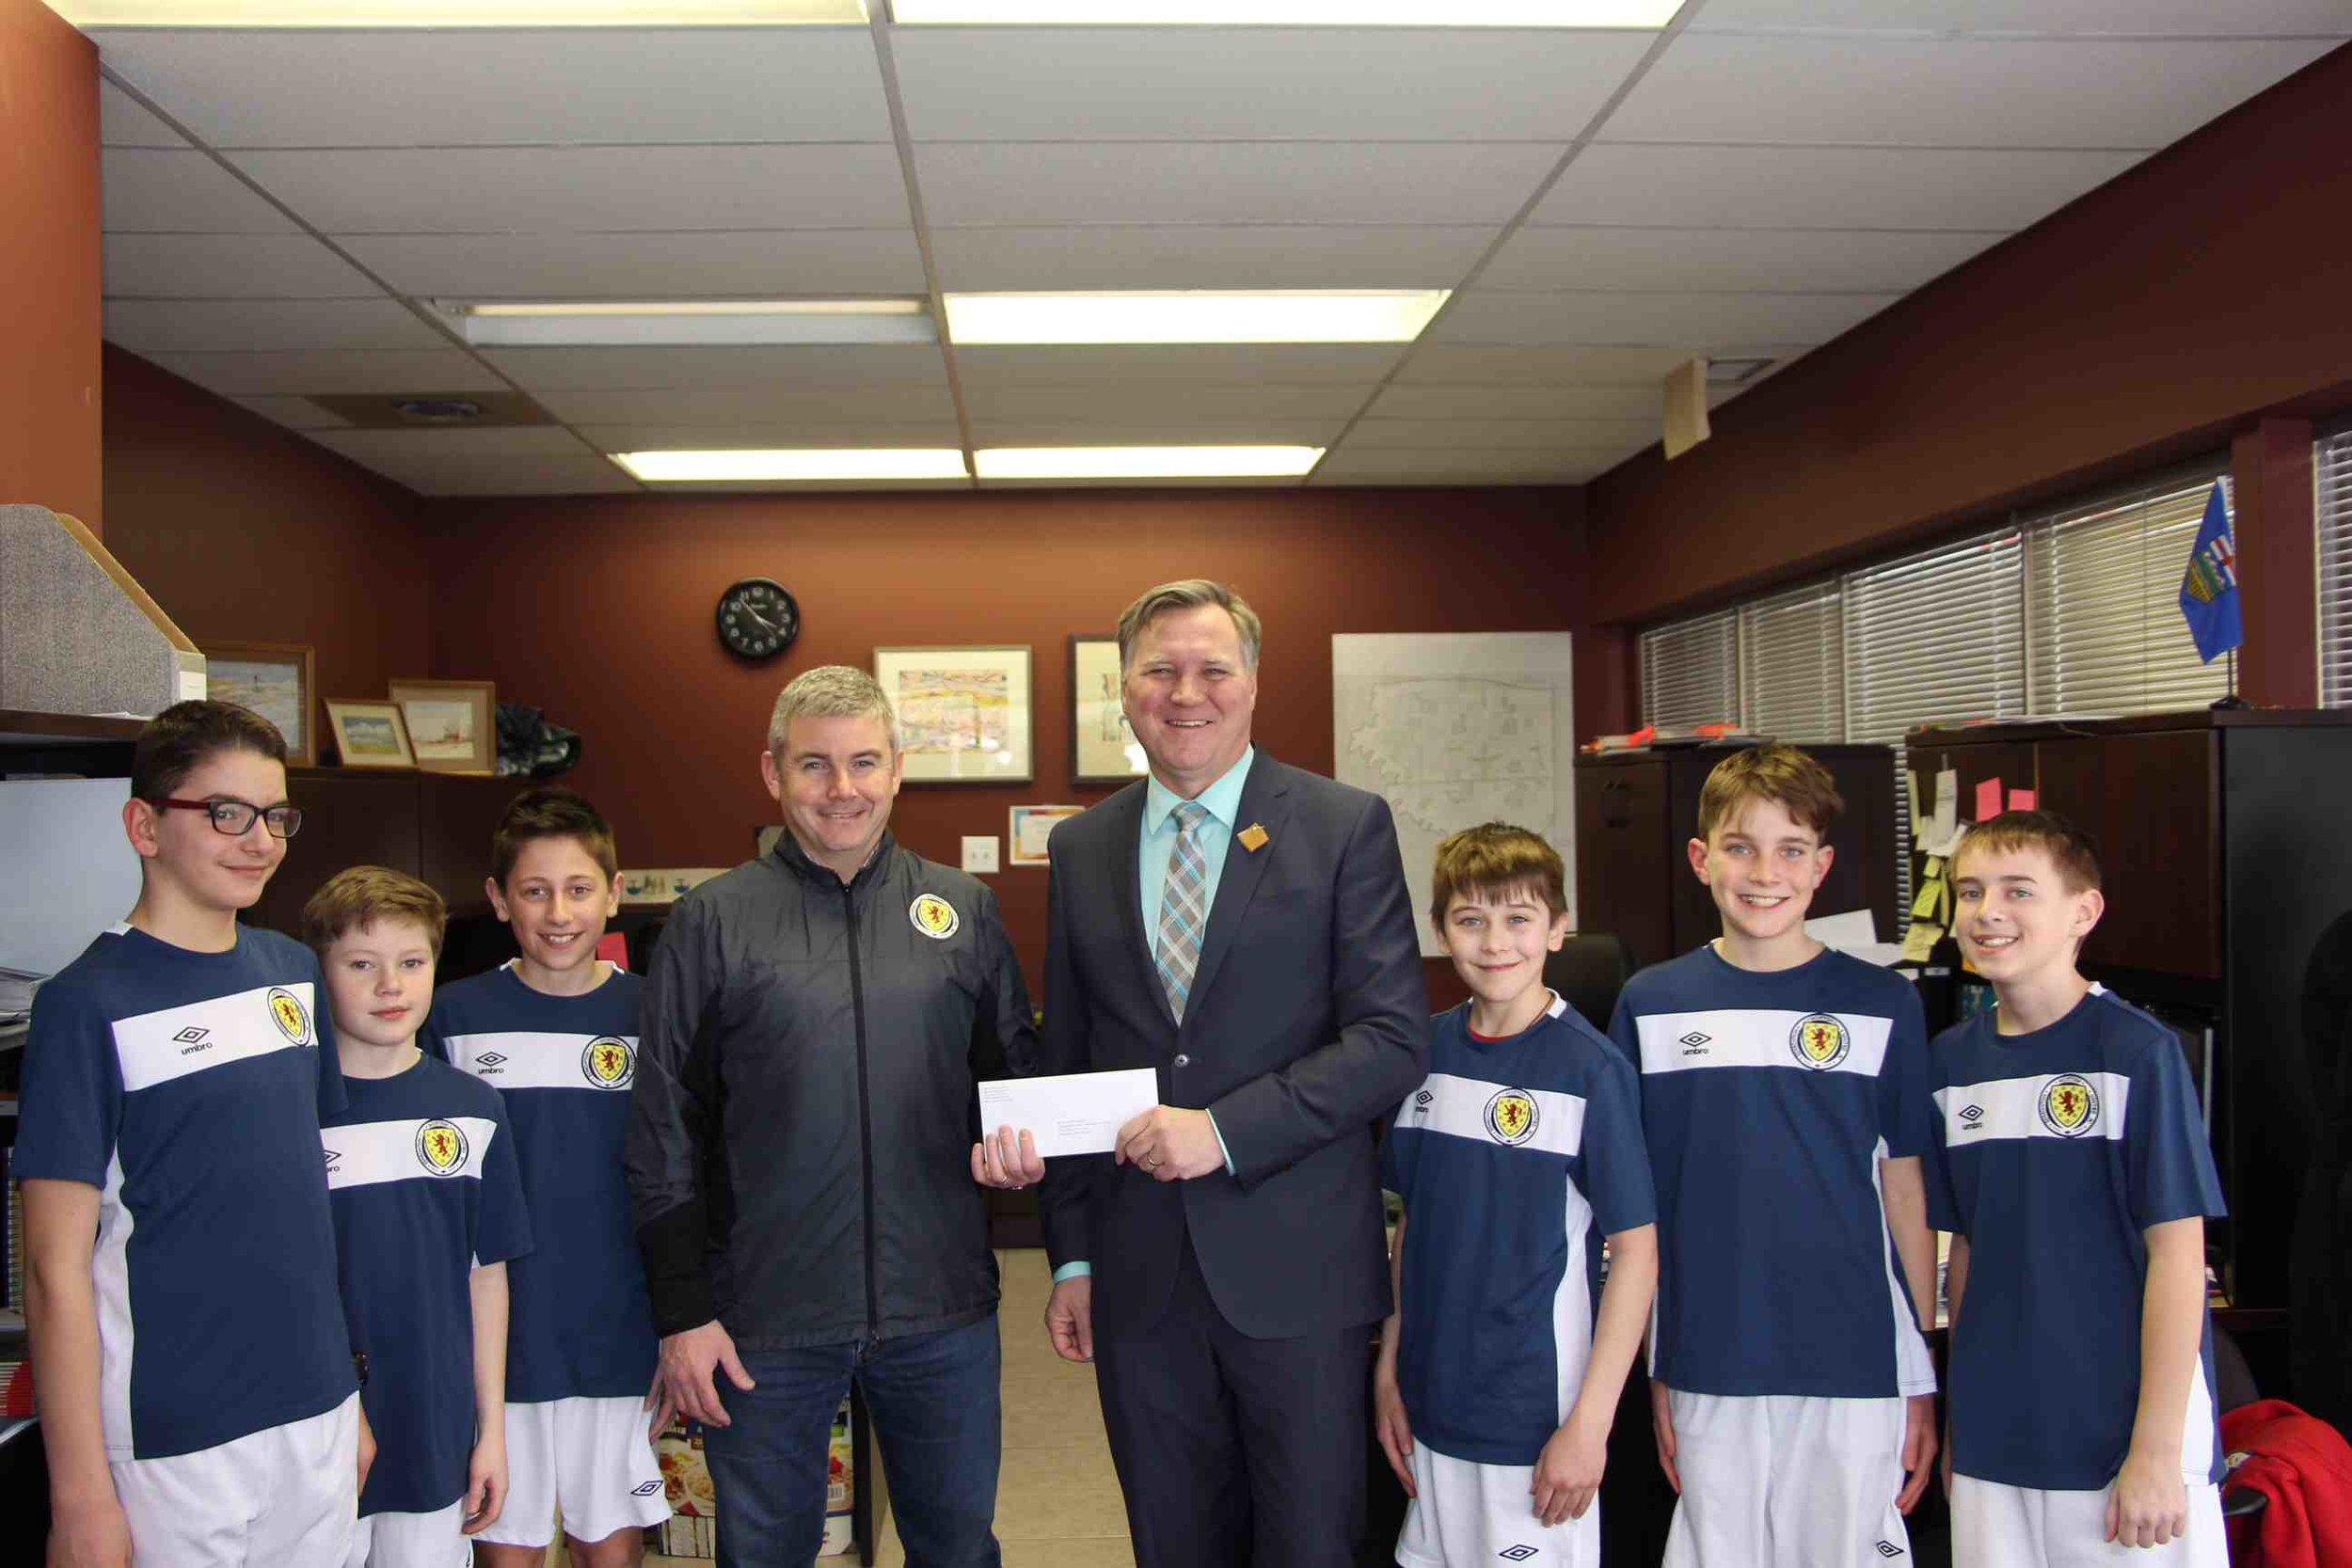 Our U12 Boys and Coach Holt at the Presentation Ceremony with MLA Richard Feehan